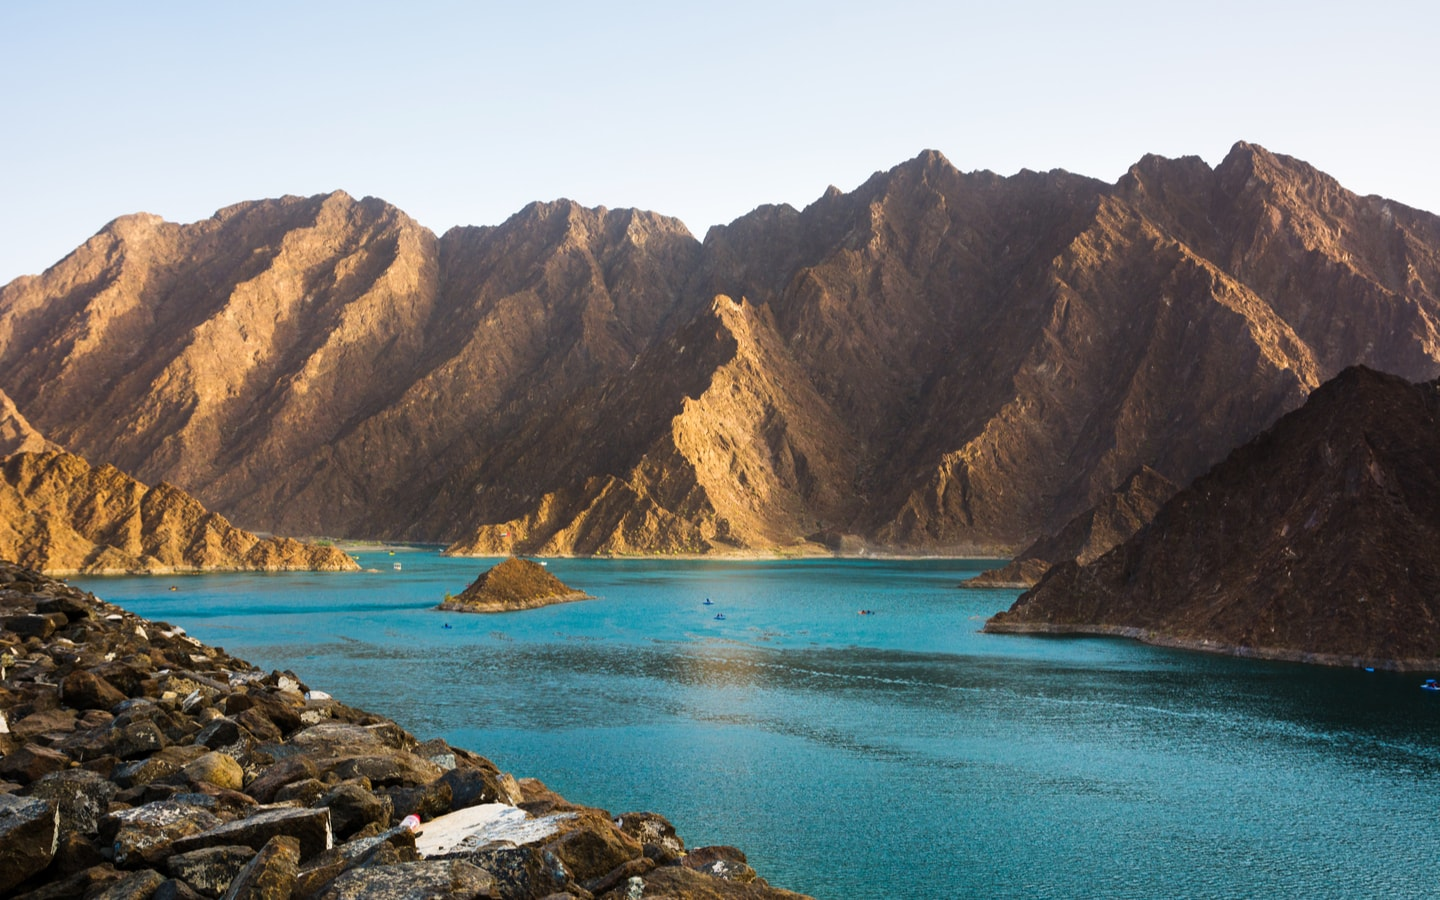 Hatta Dam near Hatta Fort Hotel in Dubai